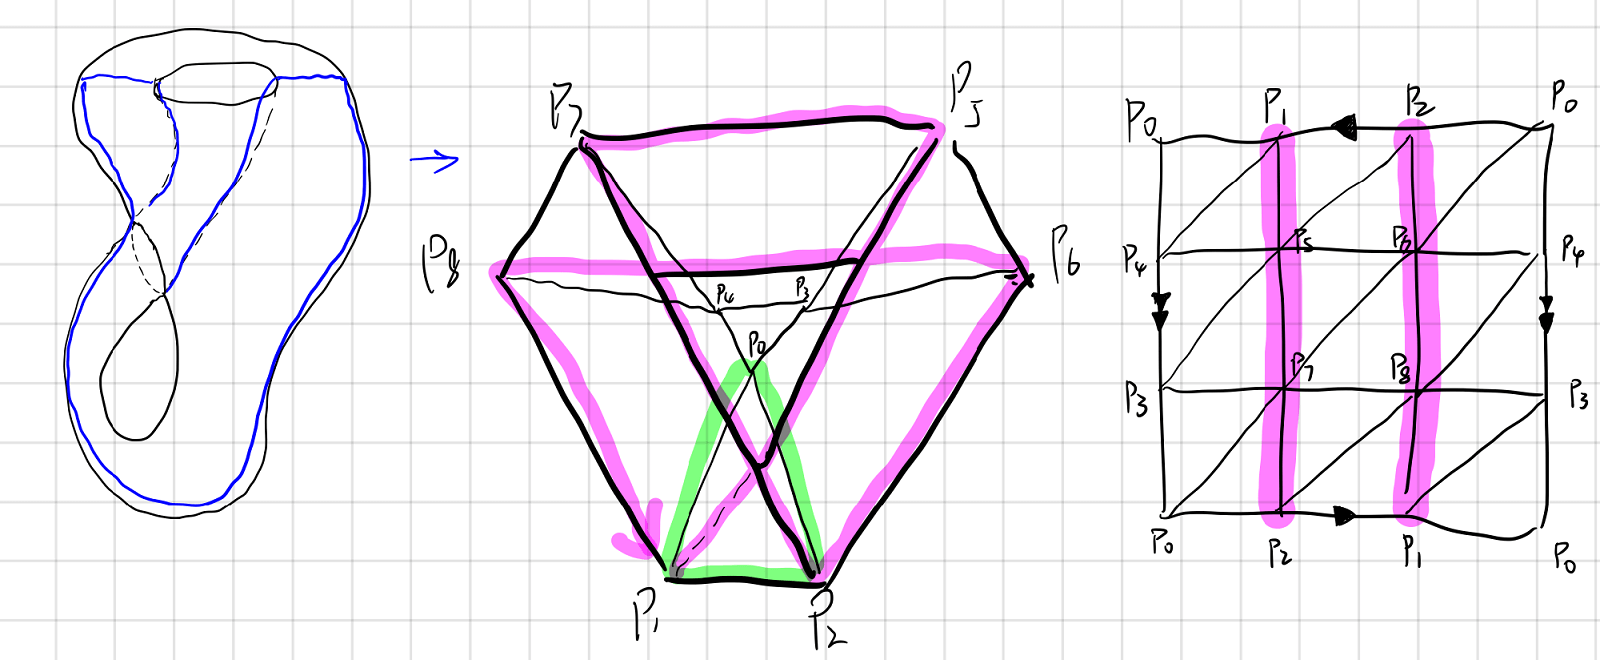 Triangulation of Klein bottle